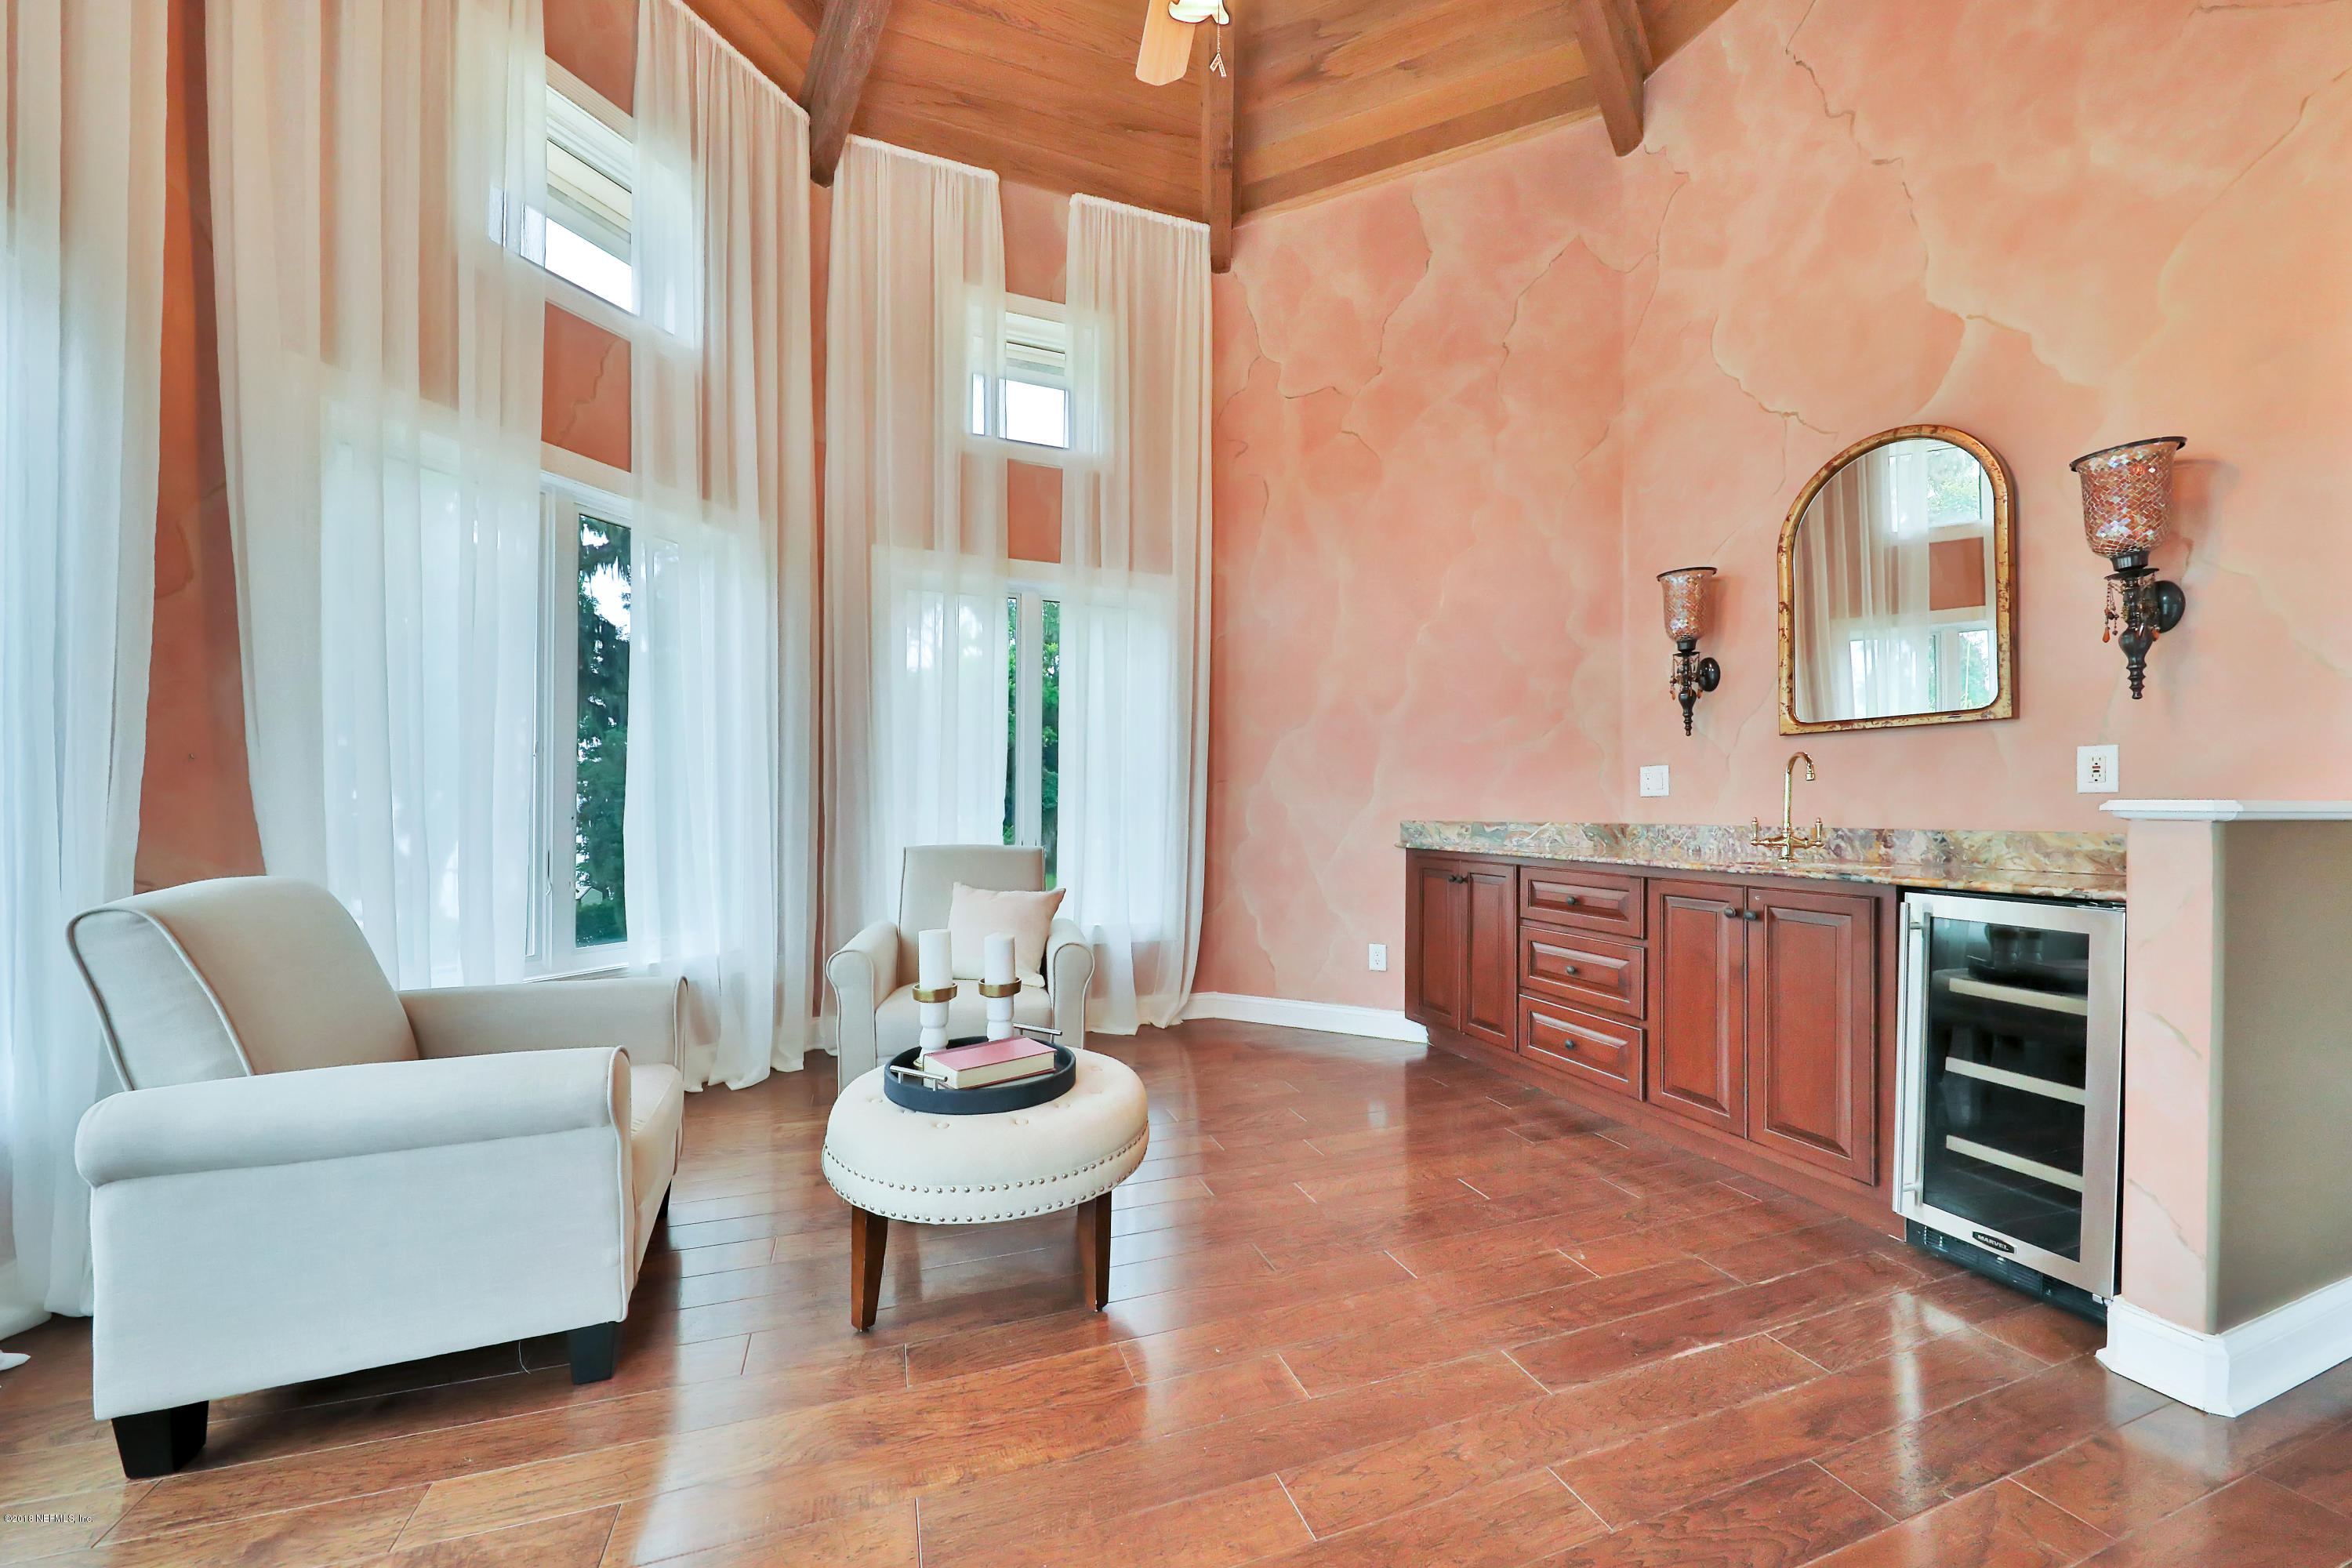 5115 STATE ROAD 13, ST AUGUSTINE, FLORIDA 32092, 5 Bedrooms Bedrooms, ,6 BathroomsBathrooms,Residential - single family,For sale,STATE ROAD 13,940646